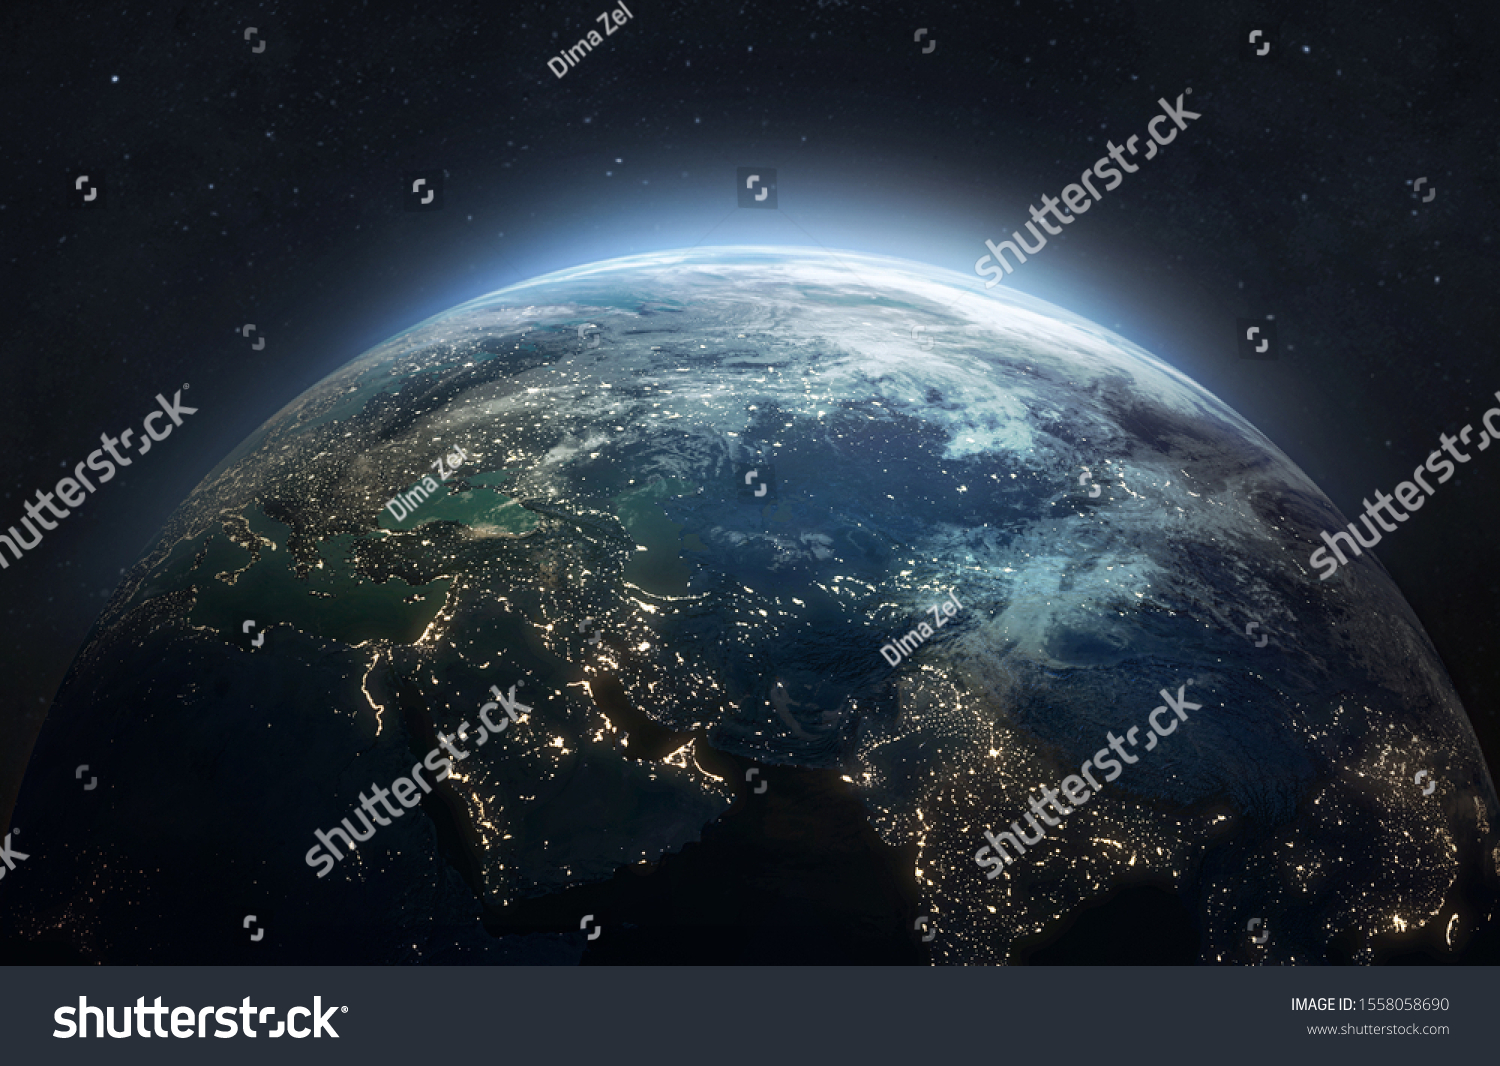 Earth at he night. Abstract wallpaper. City lights on planet. Civilization. Elements of this image furnished by NASA #1558058690